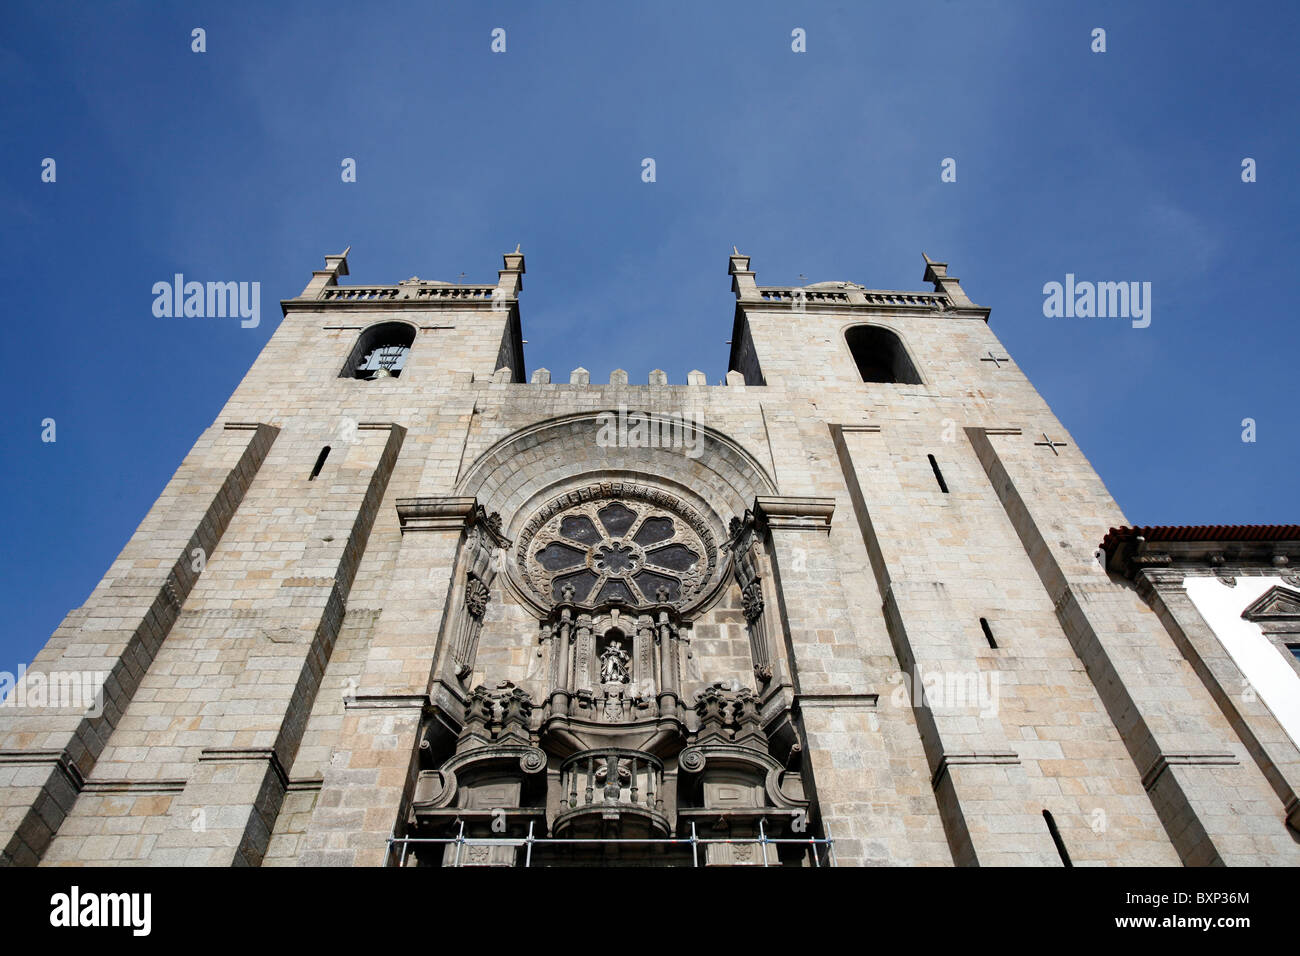 Sé cathedral, Porto - Stock Image